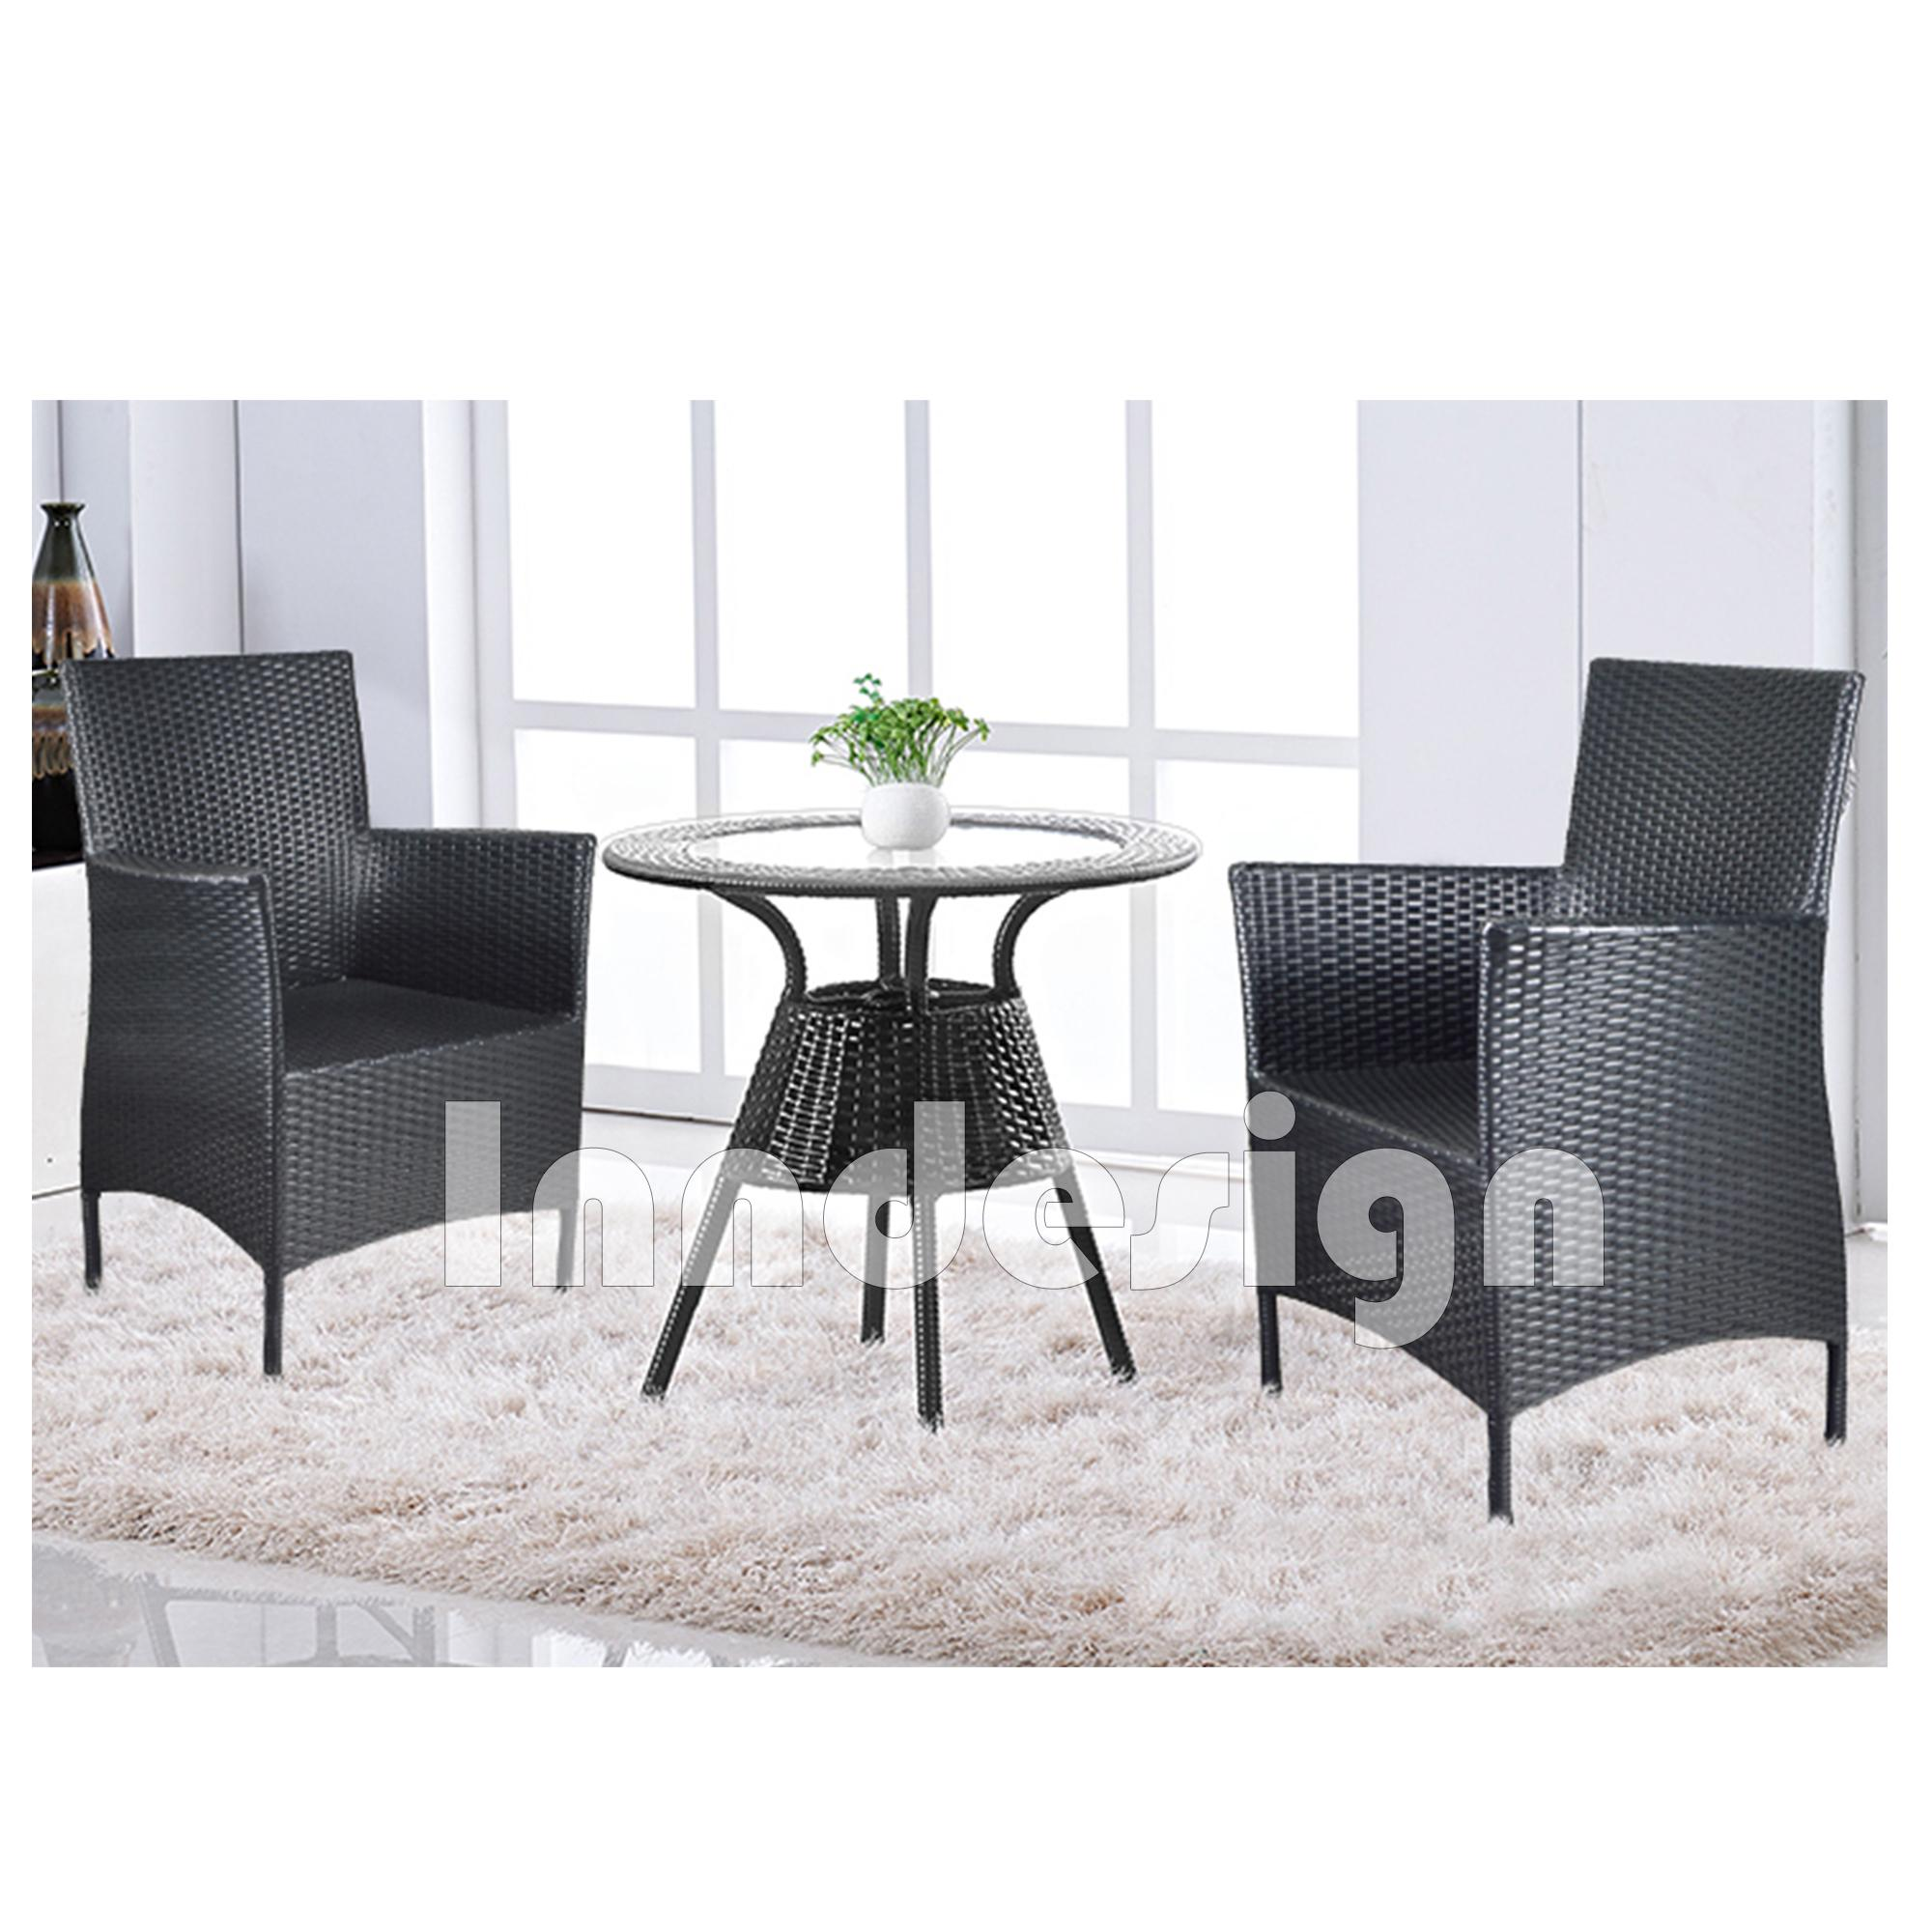 Rattan 1+2 Set Garden Set / Outdoor Dining Table Set / Coffee Table / Lounge Set ( Black)